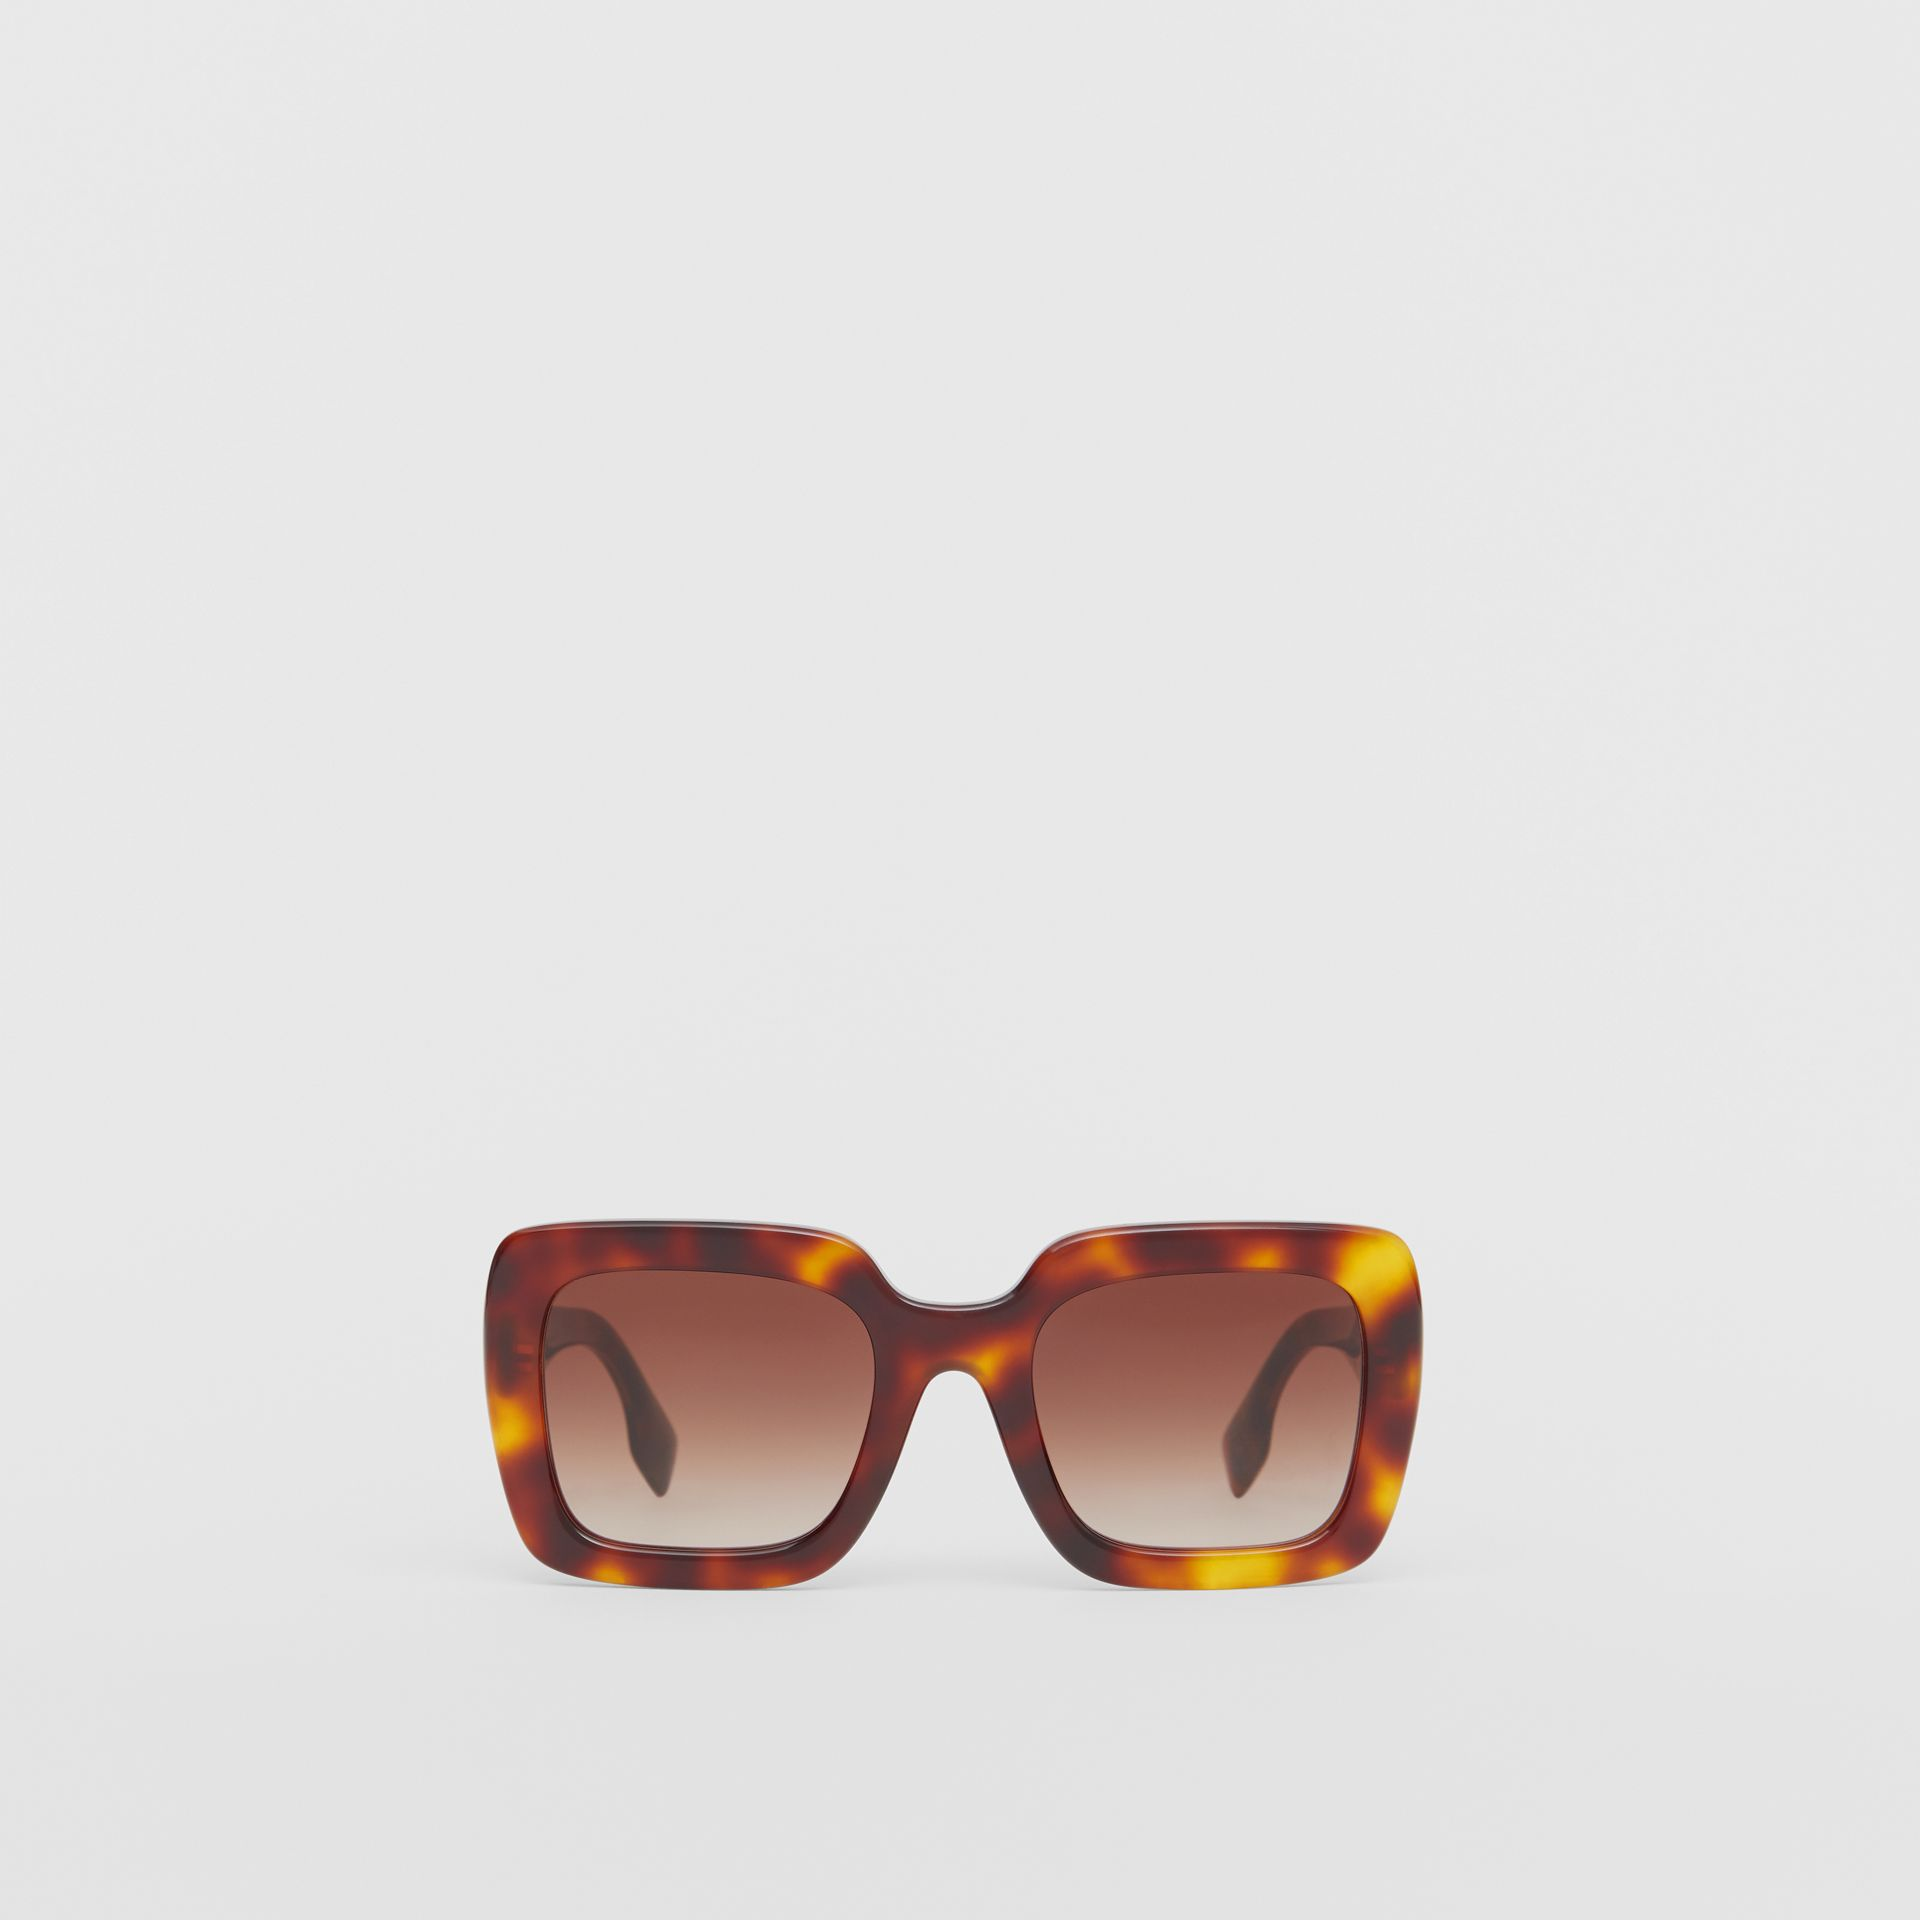 Oversized Square Frame Sunglasses in Tortoiseshell - Women | Burberry United States - gallery image 0